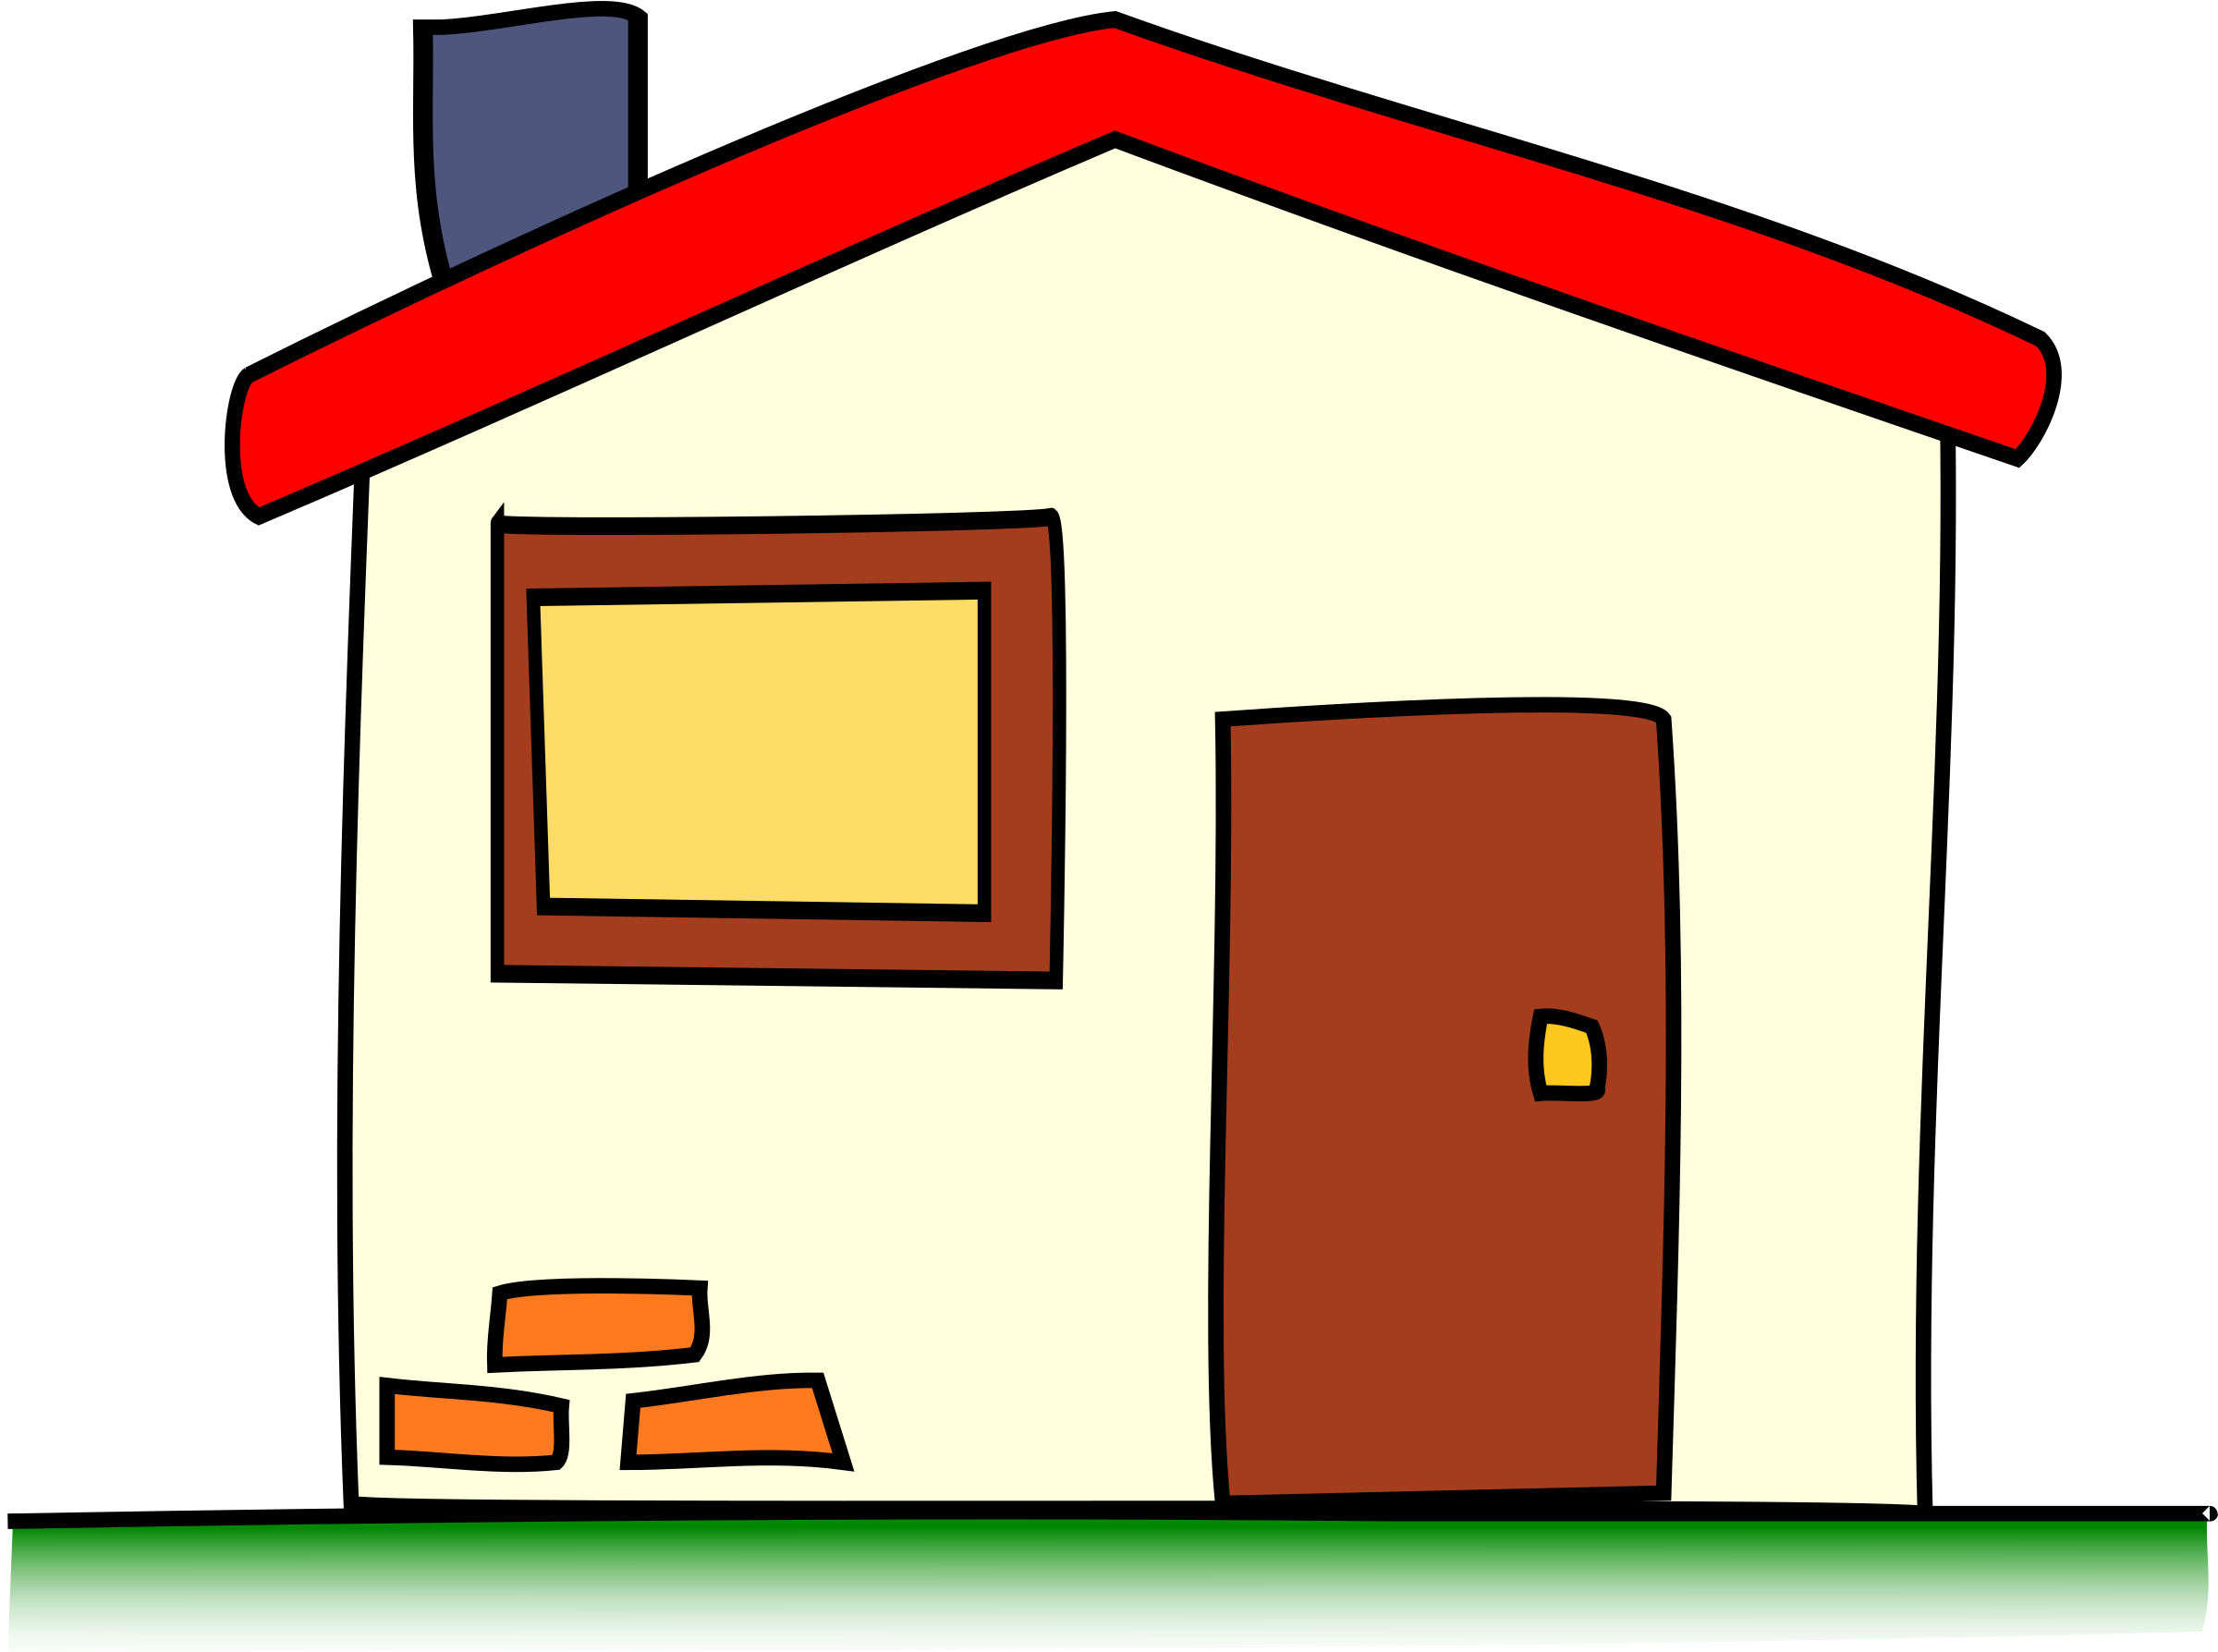 Cute house clipart 2 ClipartPost